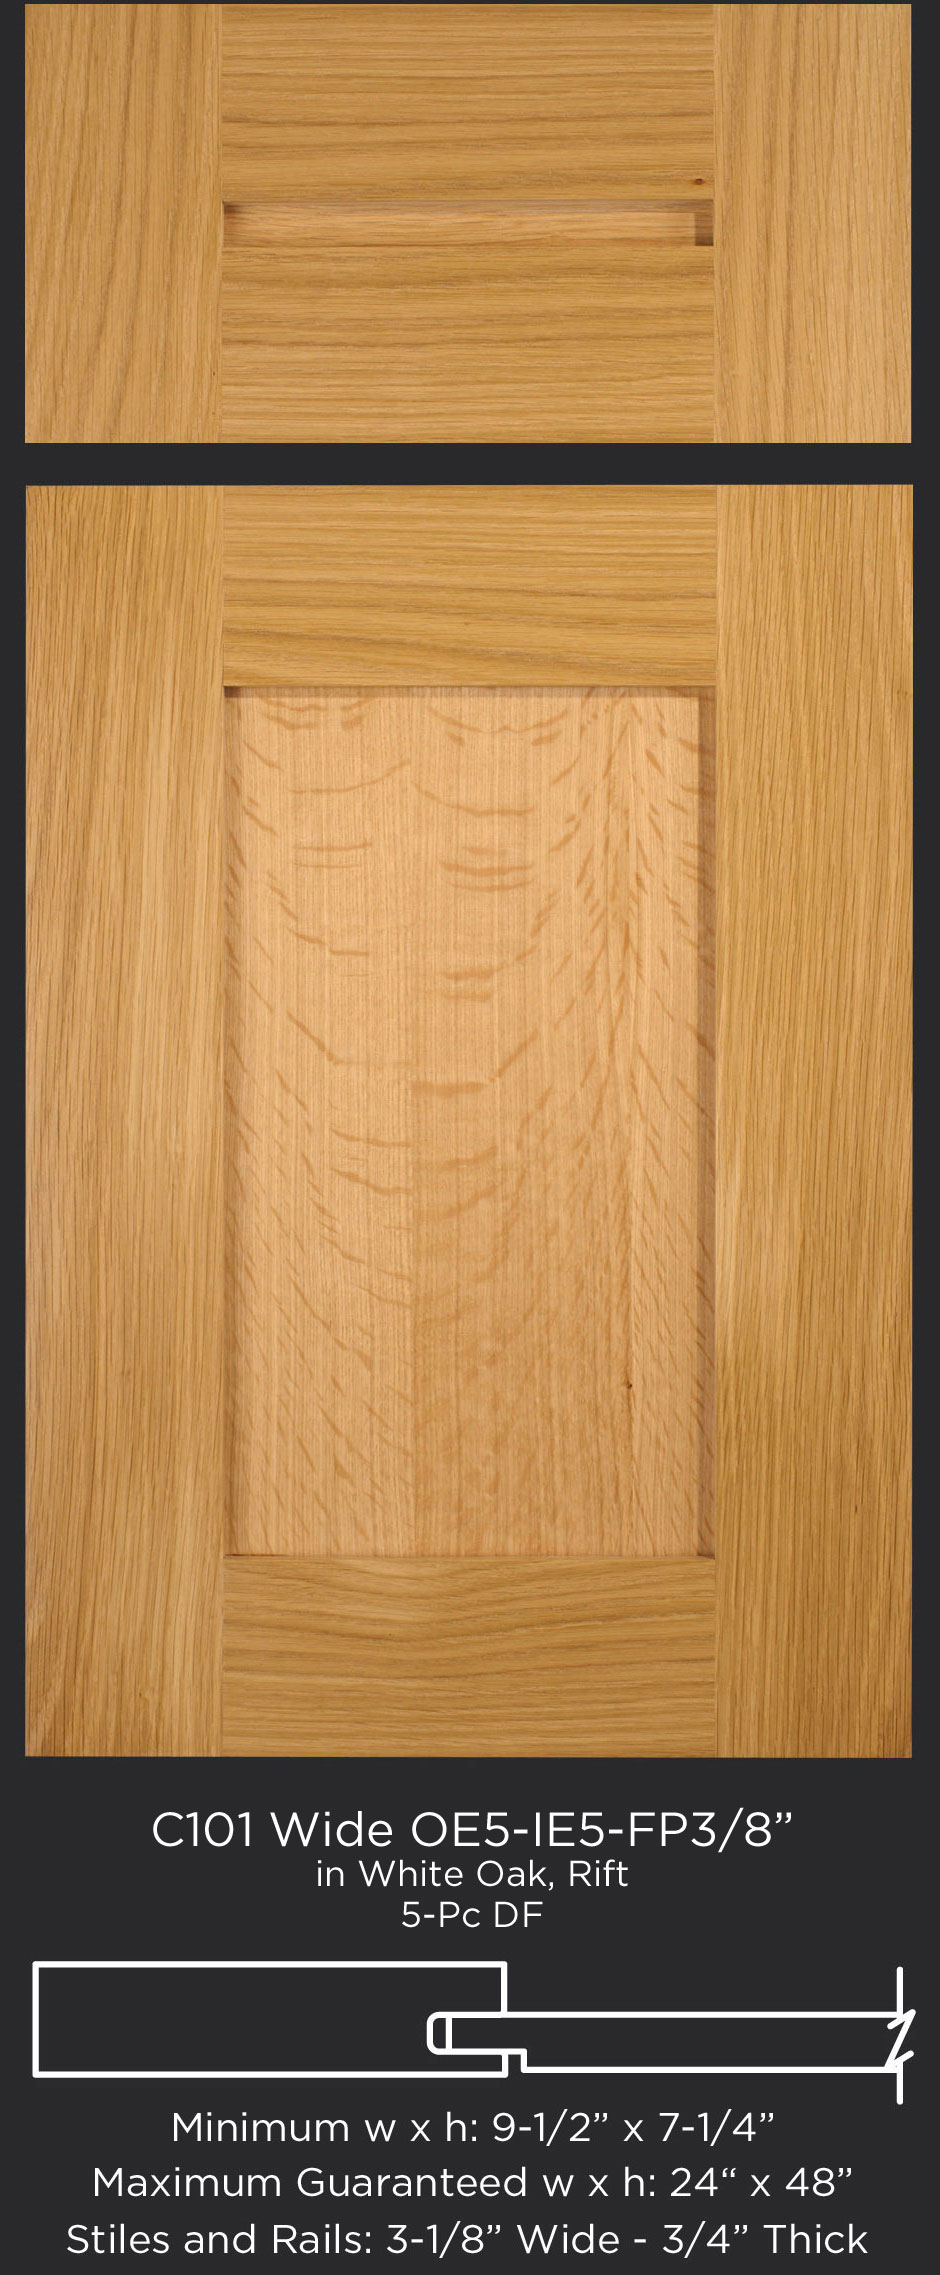 Cope and Stick Cabinet Door C101 Wide OE5-IE5-FP3/8 White Oak, Rift and 5-piece drawer front